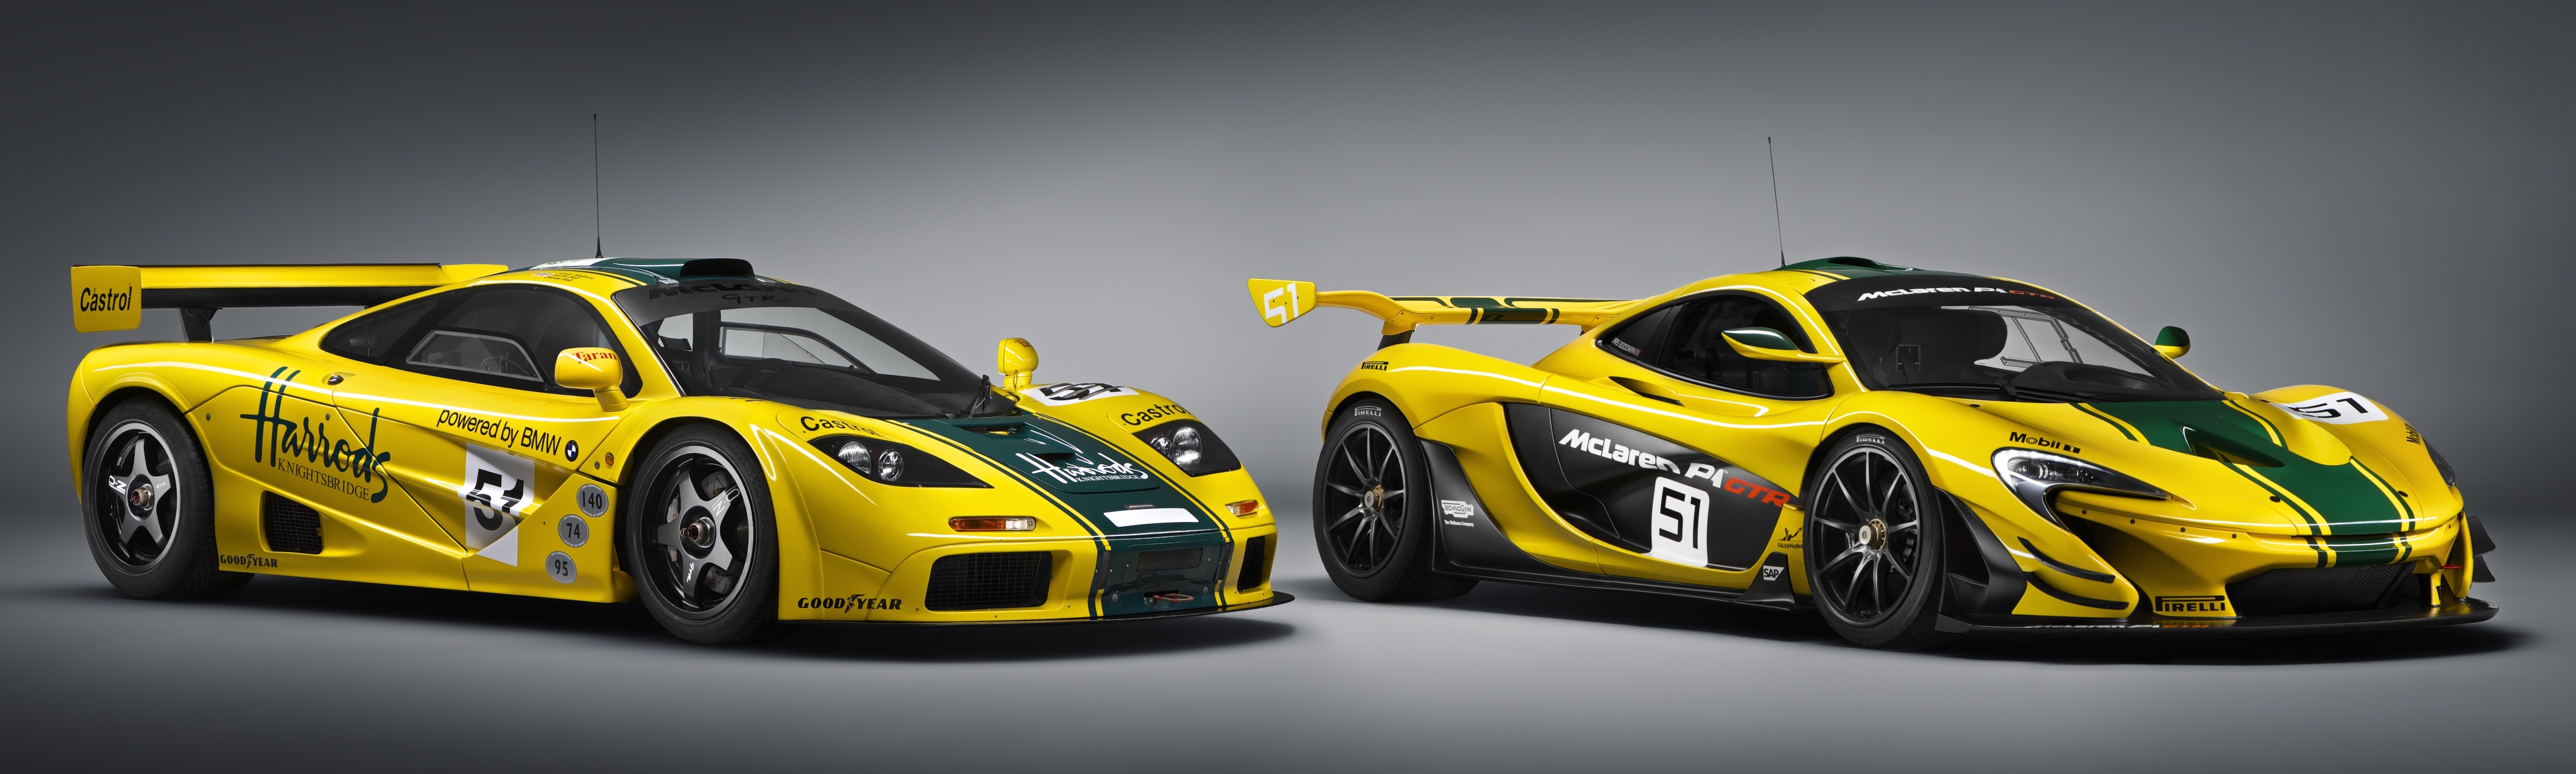 mclaren p1 gtr unveiled with 1 000 ps hybrid power image